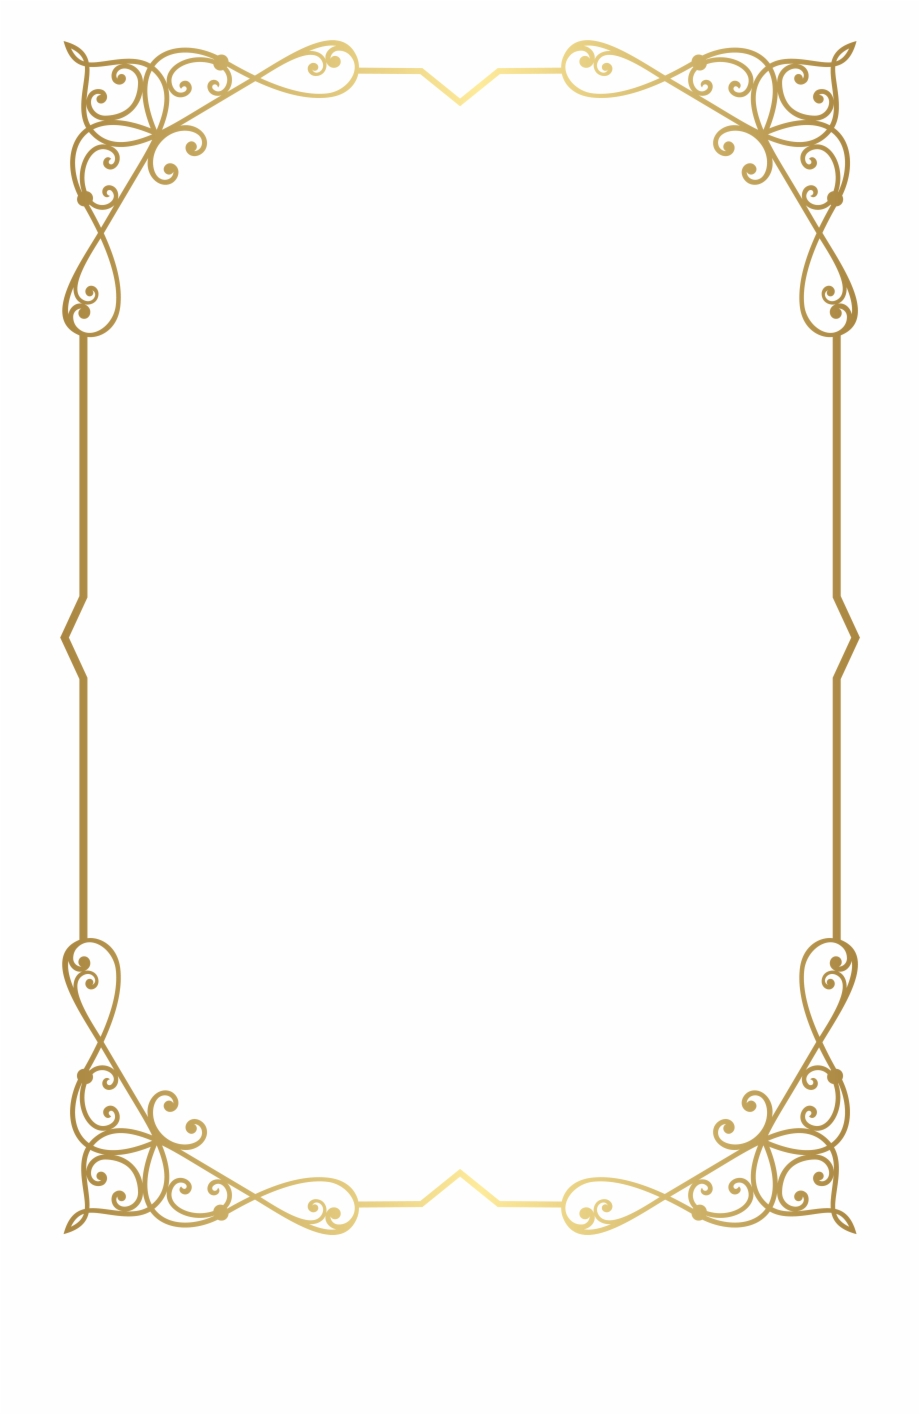 Simple gold border clipart clip art black and white download Decorative Frame Png - Fancy Gold Border Png, Transparent Png ... clip art black and white download